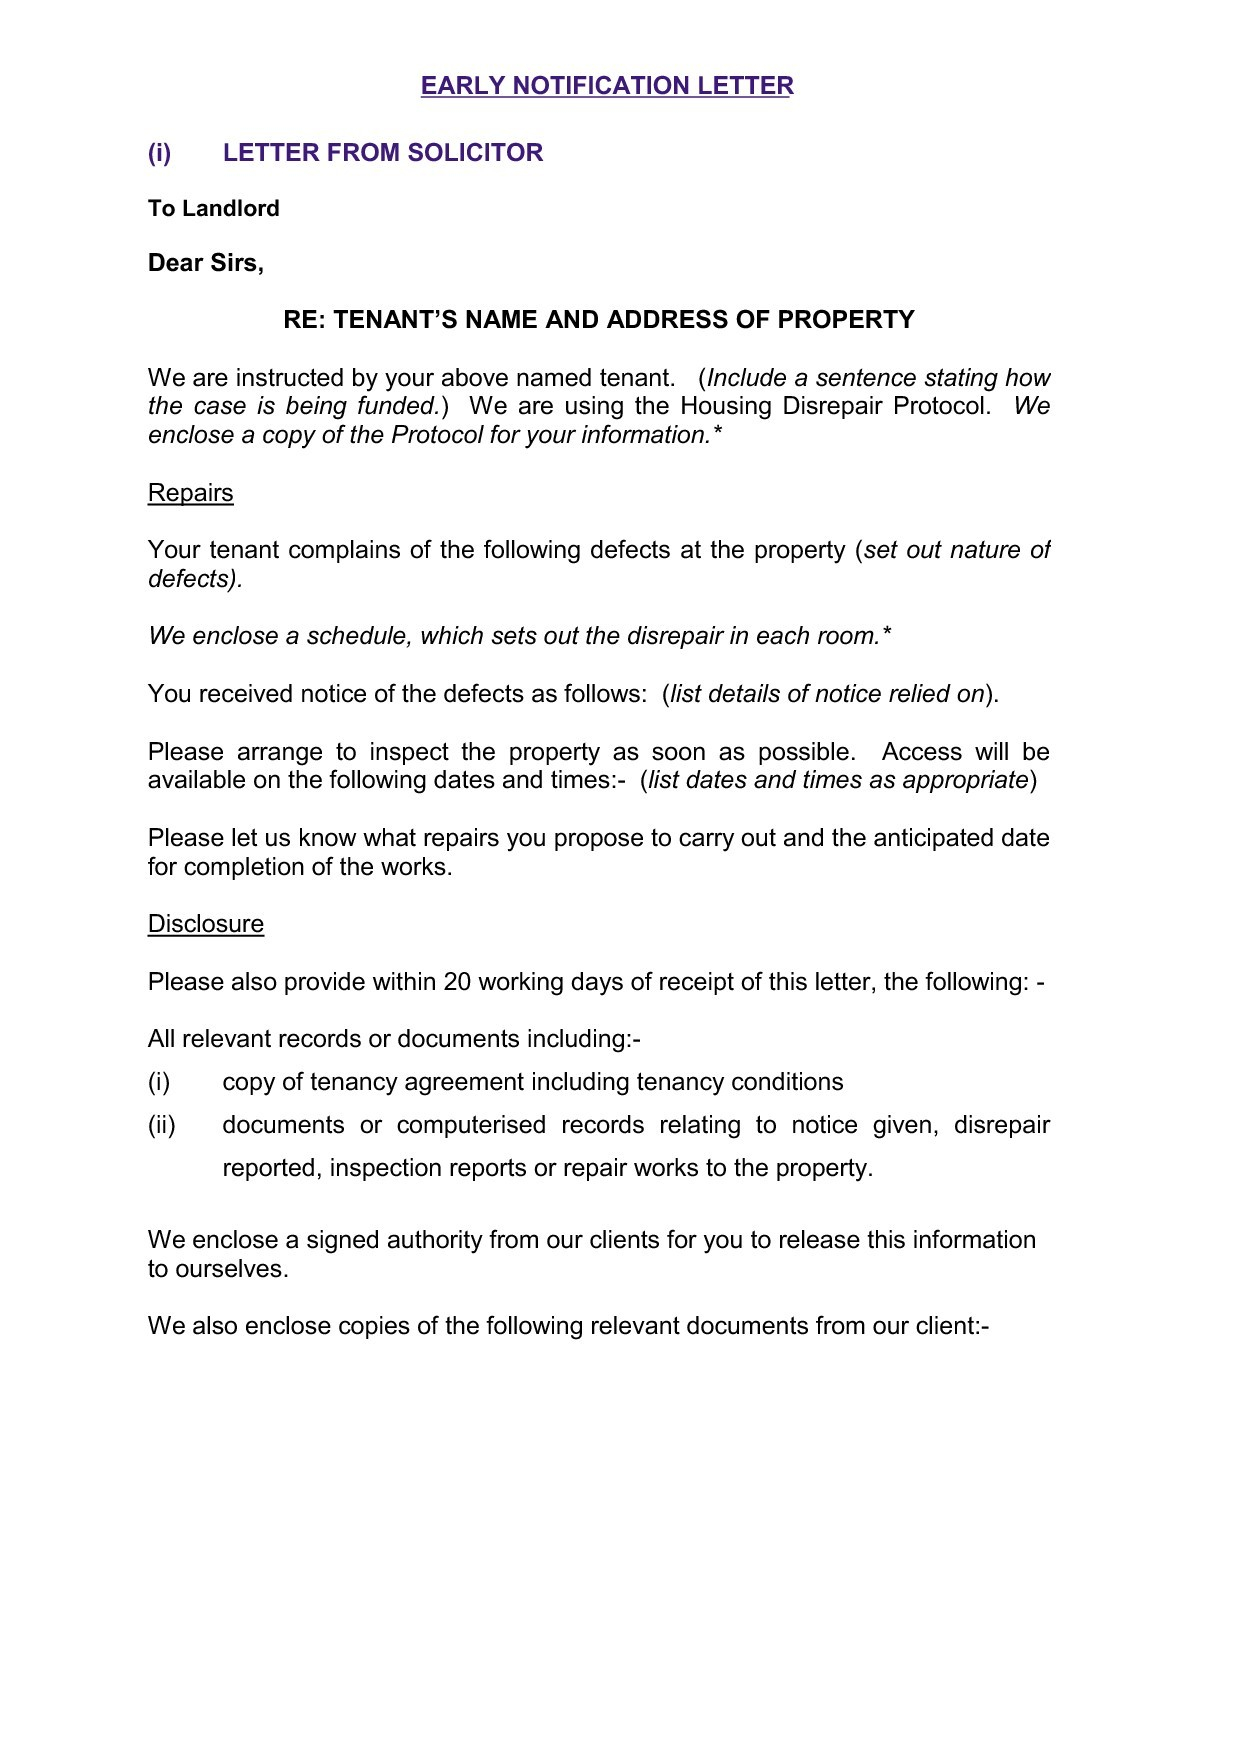 Property Inspection Letter to Tenant Template - Property Inspection Letter to Tenant Uk Archives New Property